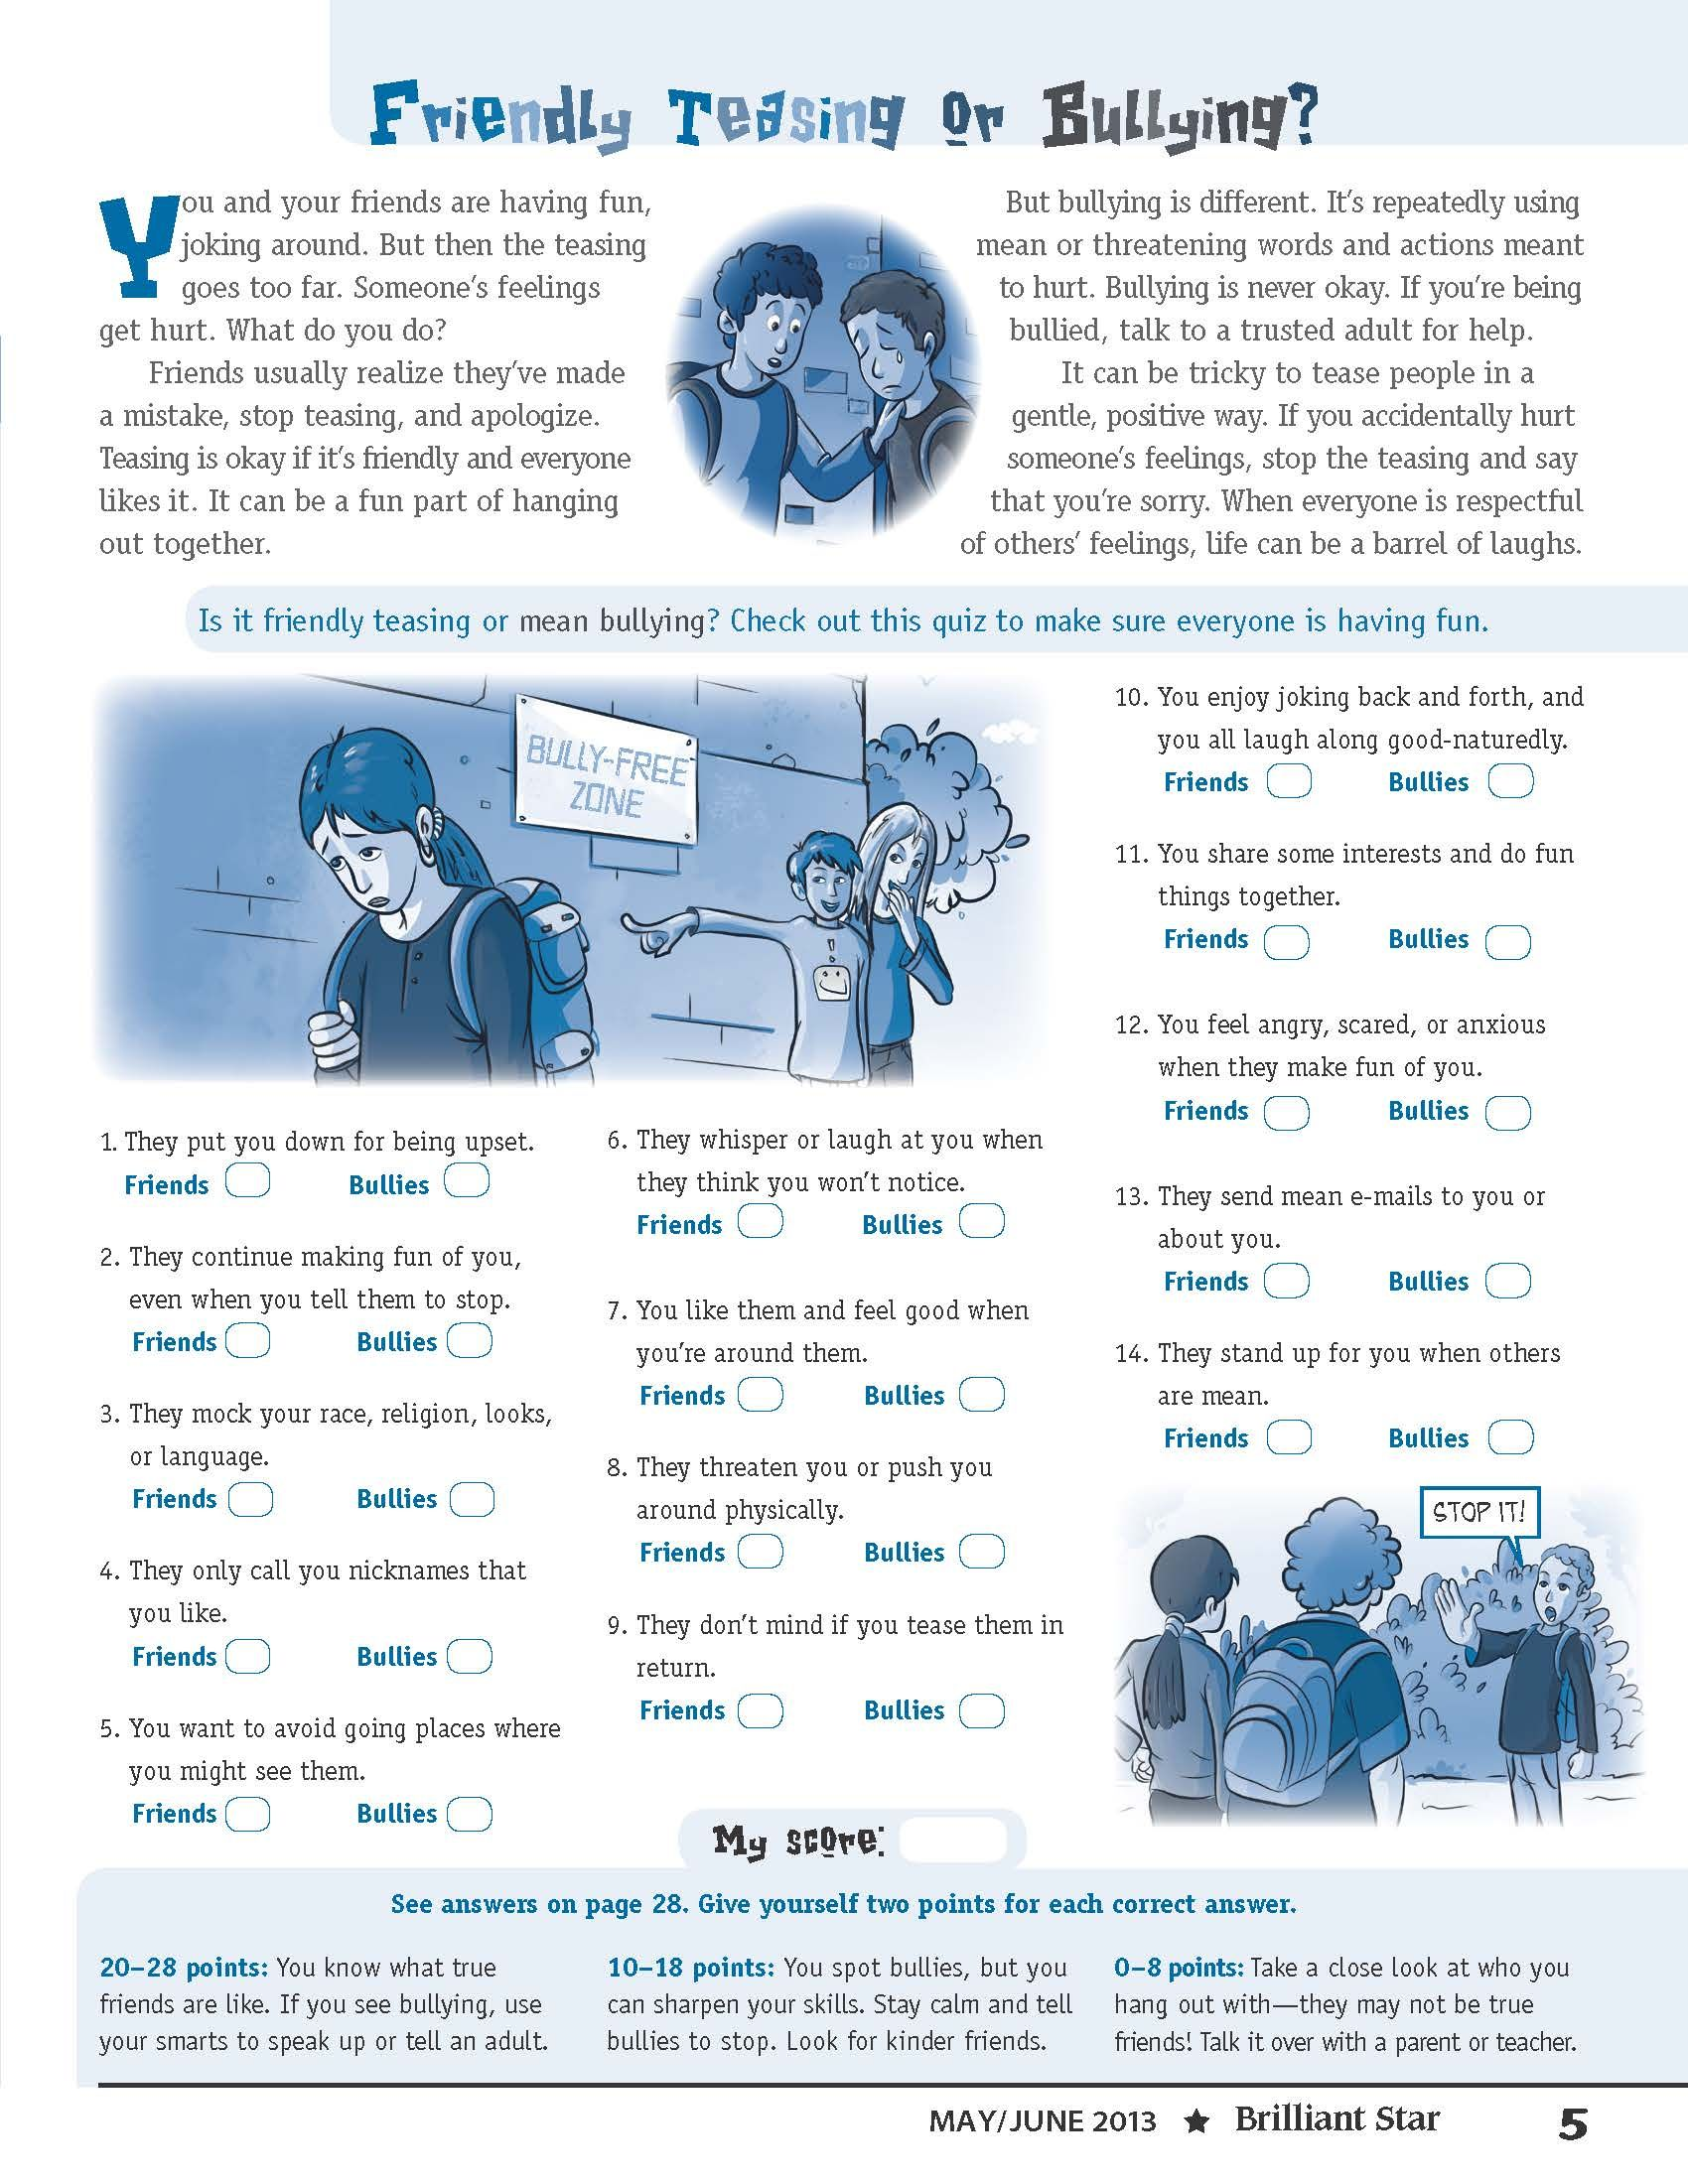 Pin By Brilliant Star On Life Skills For Kids